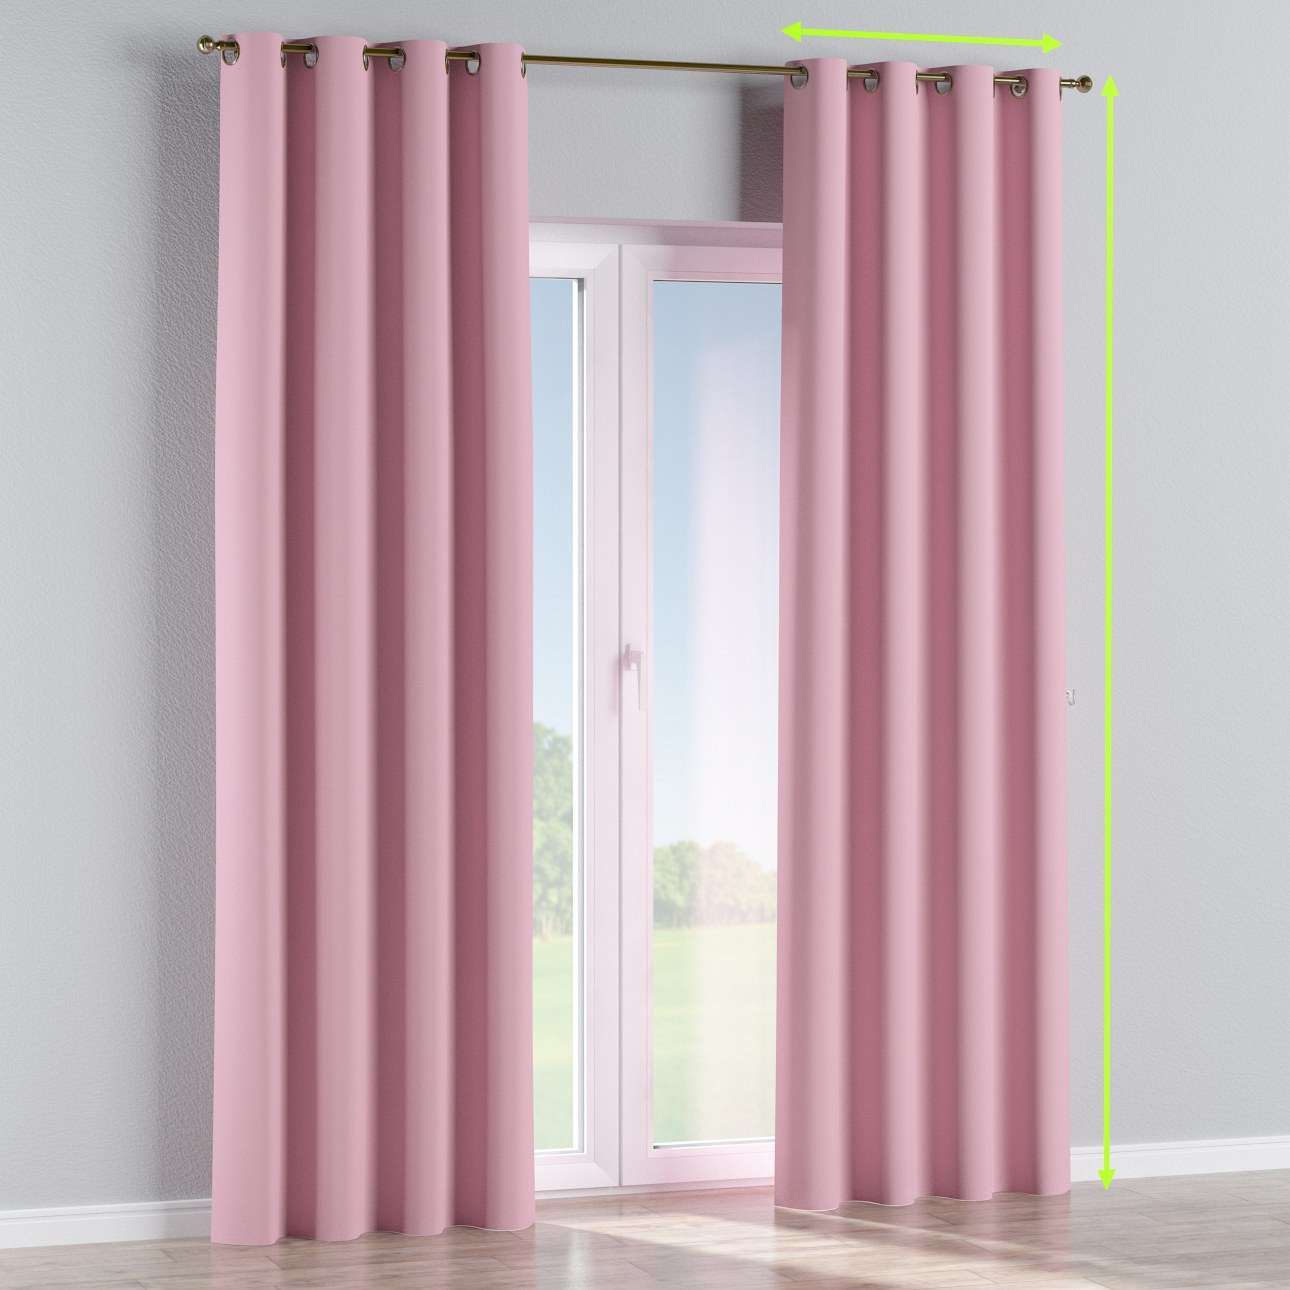 Blackout eyelet curtain in collection Blackout, fabric: 269-92